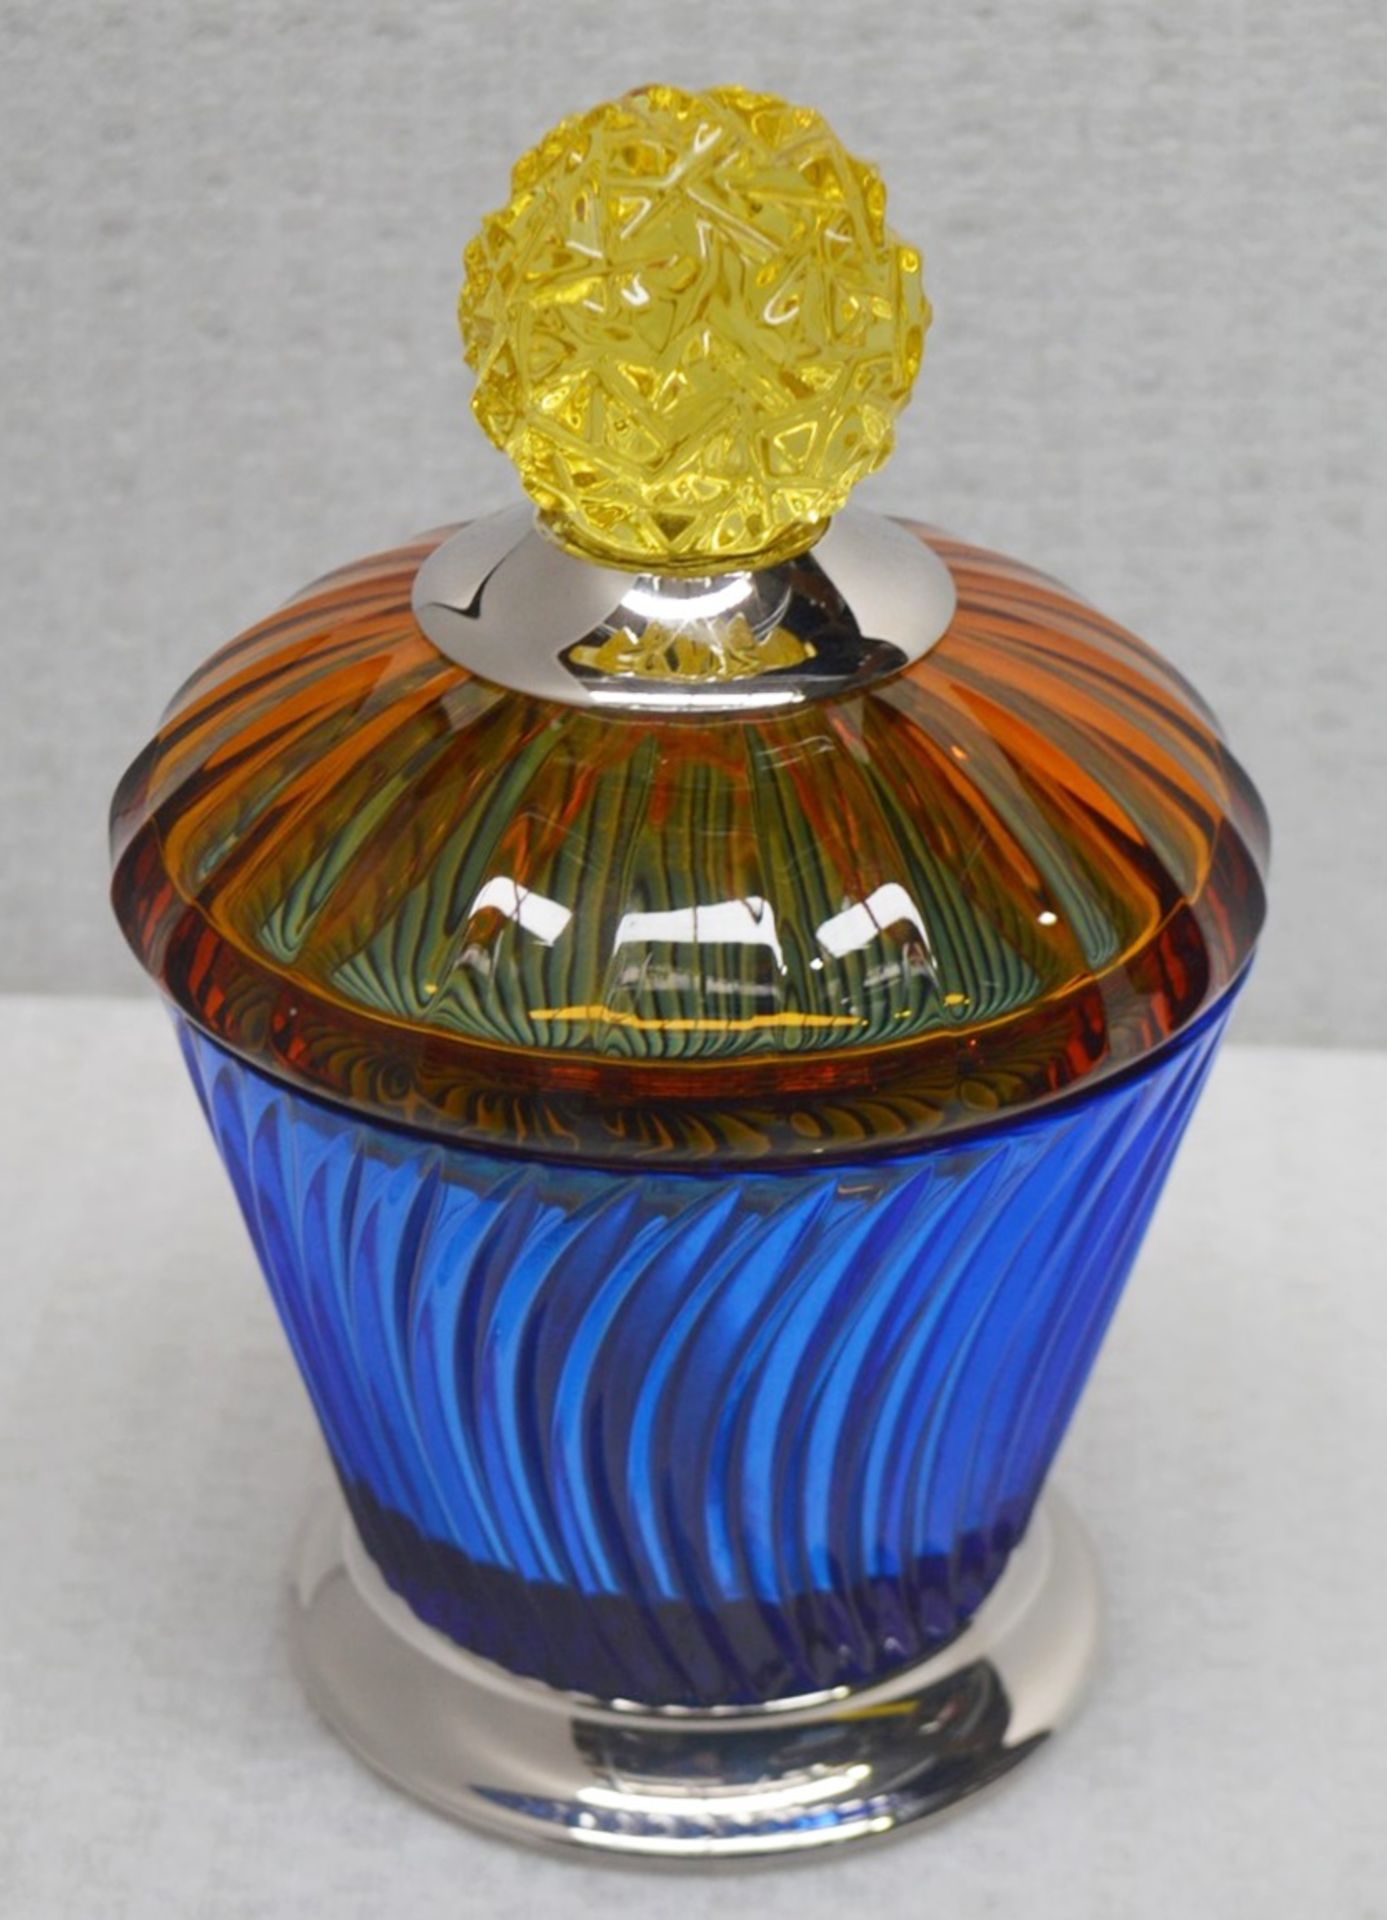 1 x BALDI 'Home Jewels' Italian Hand-crafted Artisan Crystal Marika Cup In Blue & Orange, With A